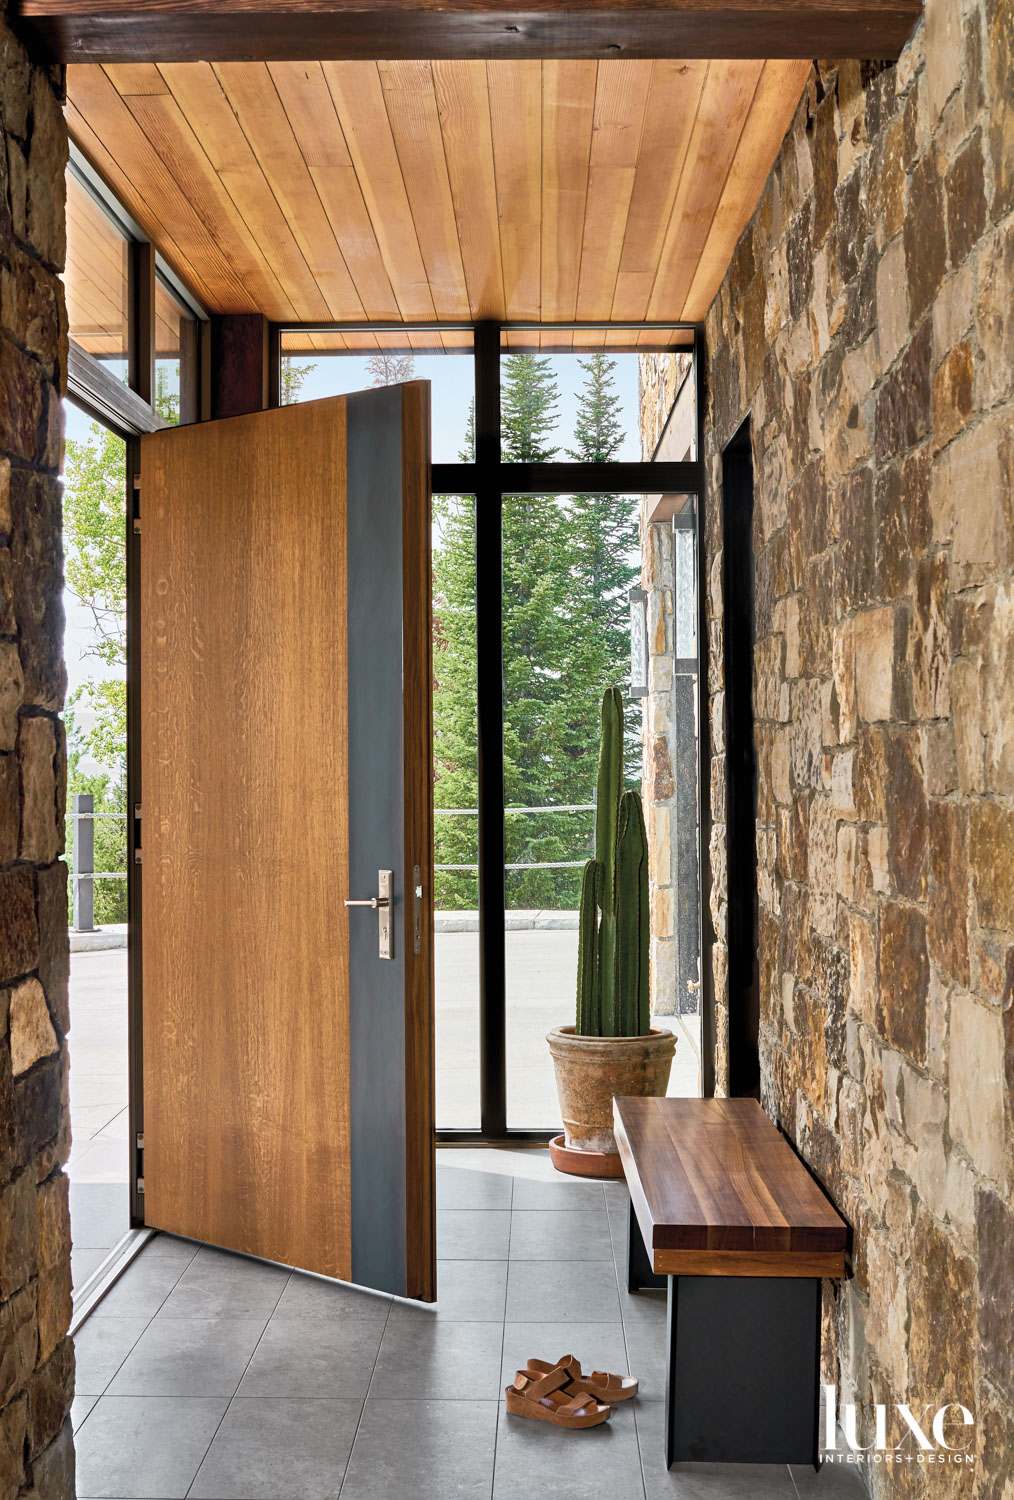 The entryway features a large...